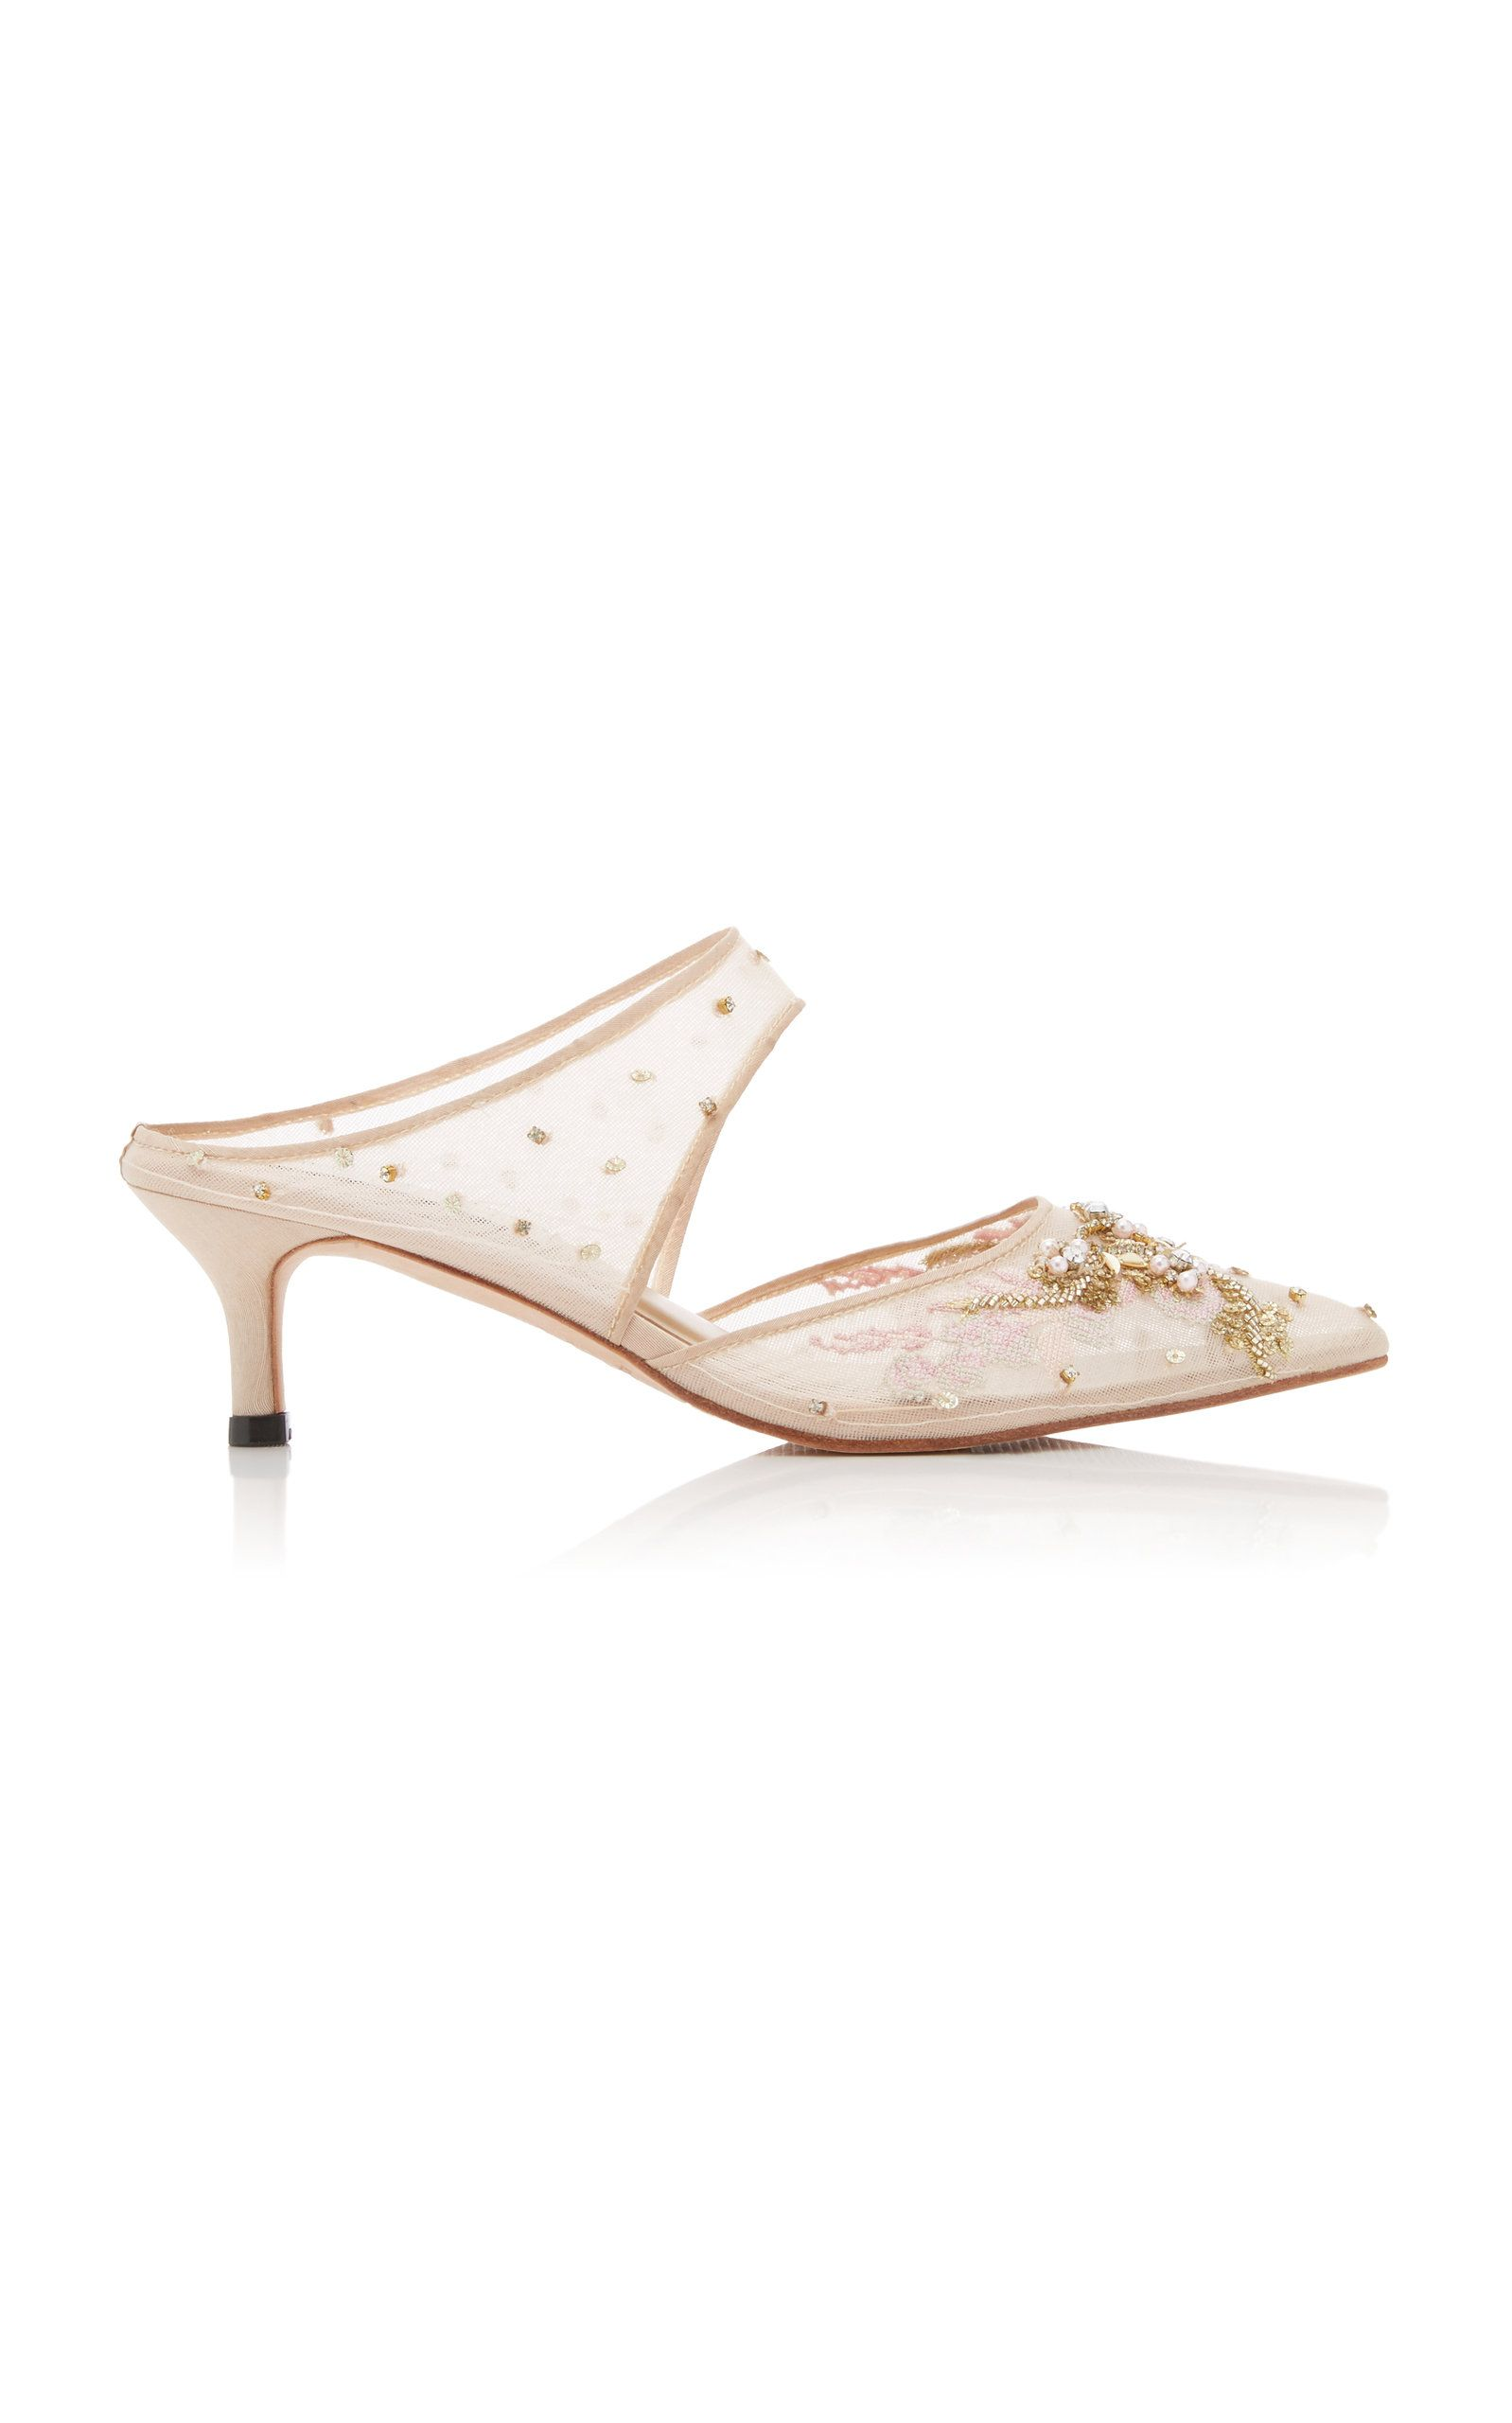 551a8b724706 55 Best Wedding Shoes for 2018 - Ivory